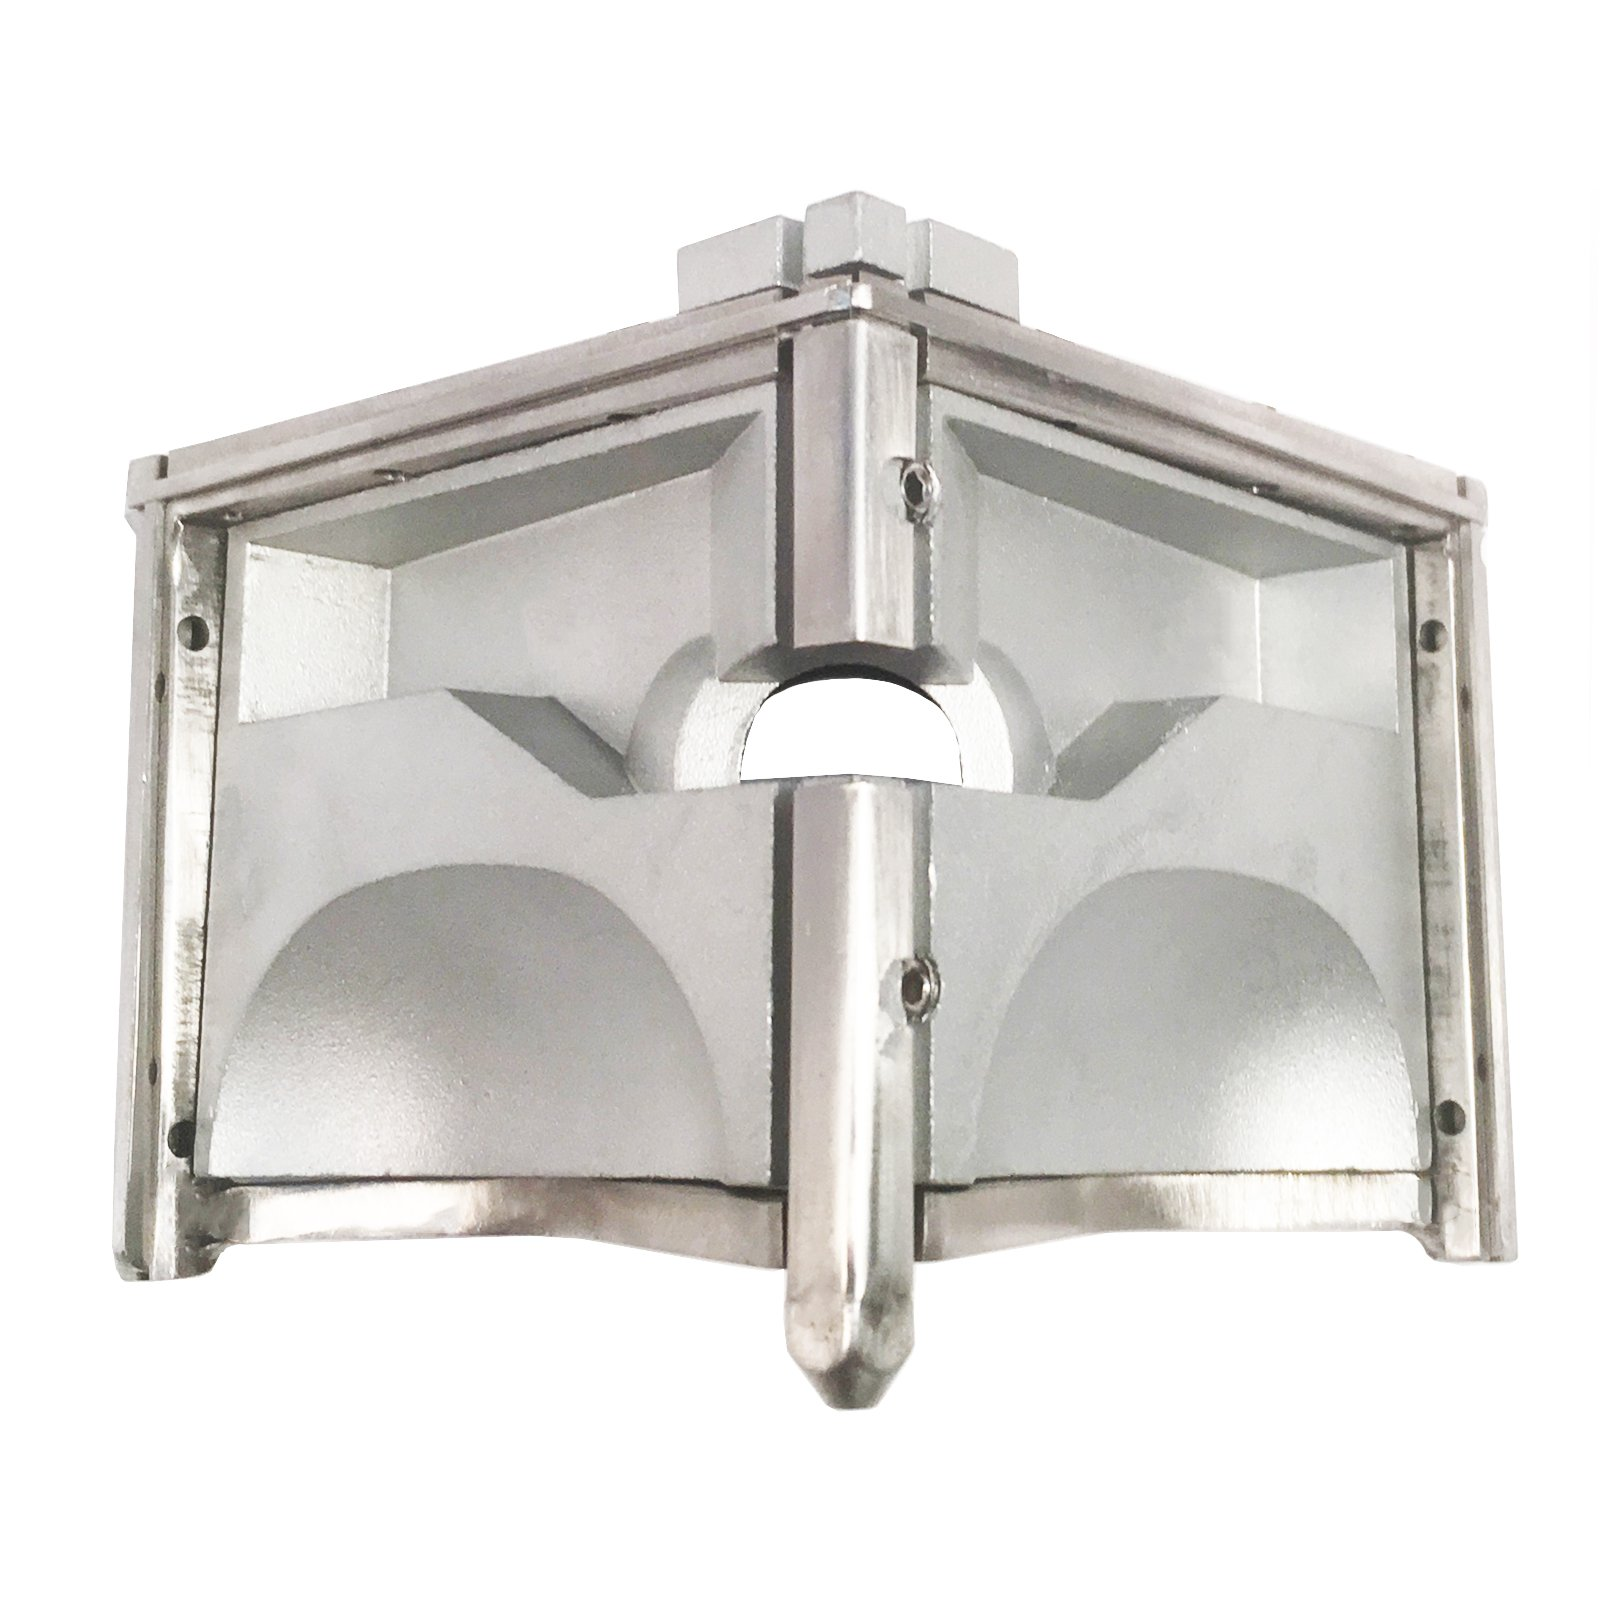 Platinum 3'' Angle Head Corner Glazer w/ 36-62'' Extendable Aluminum Handle by Platinum Drywall Tools